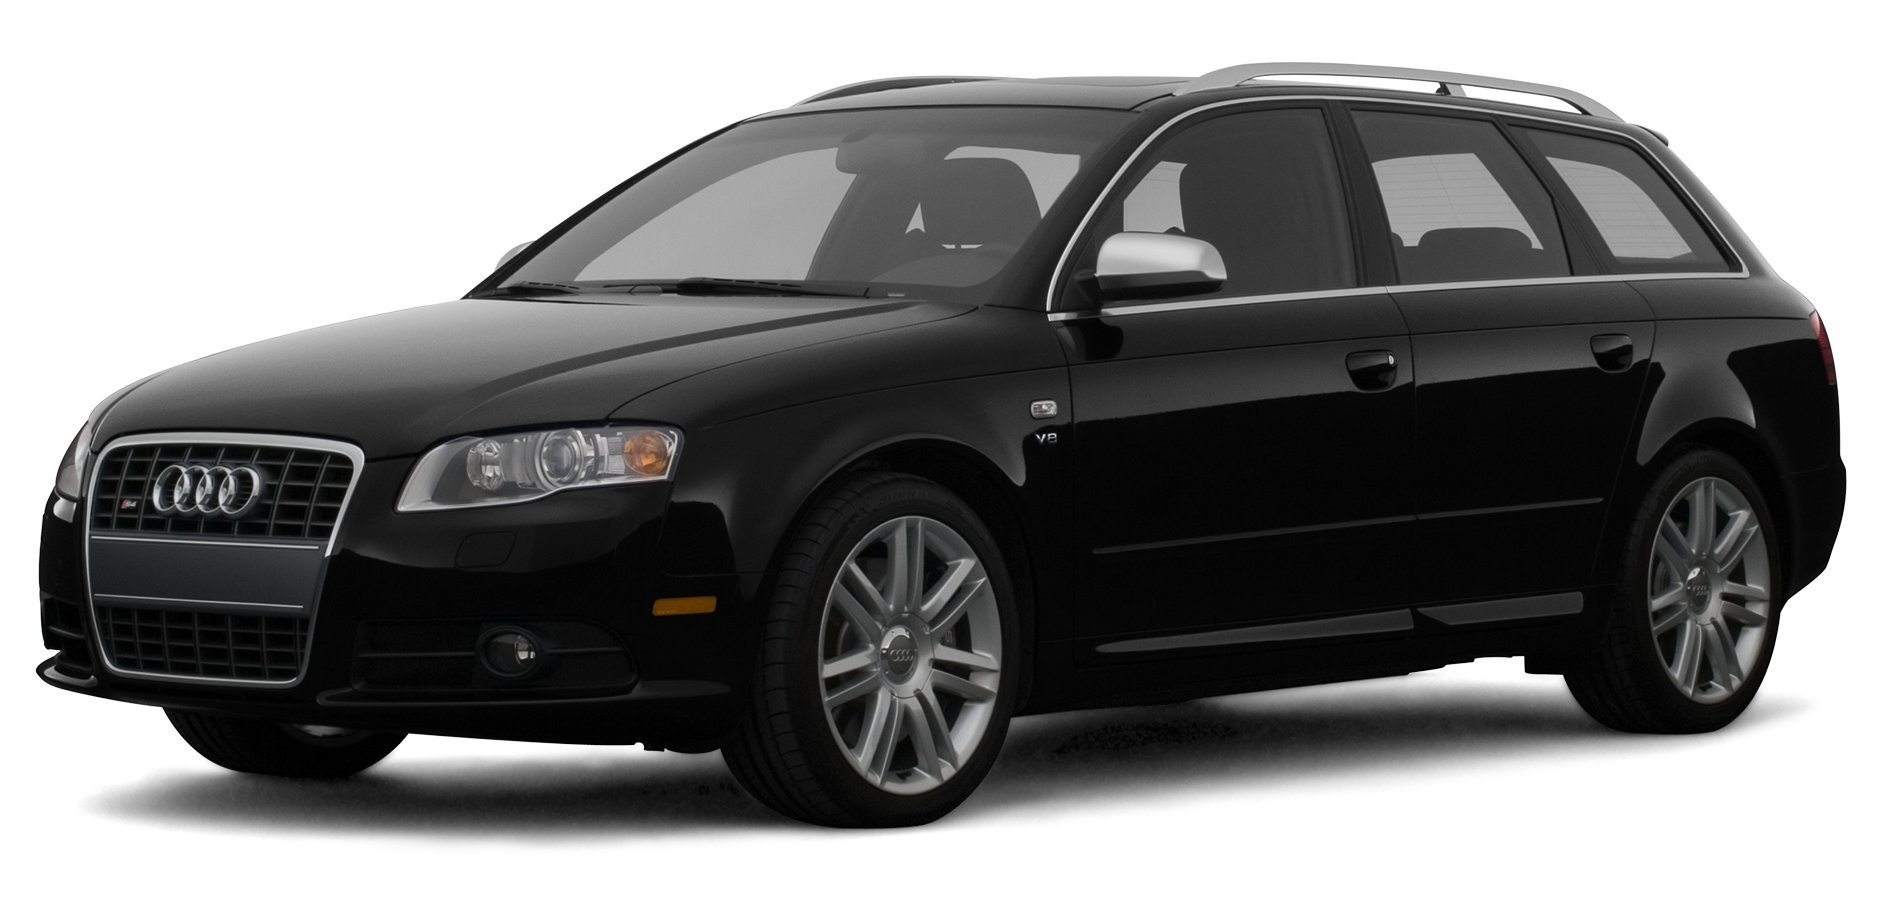 ... 2007 Audi S4, 2007 5-Door Avant Wagon Automatic Transmission ...